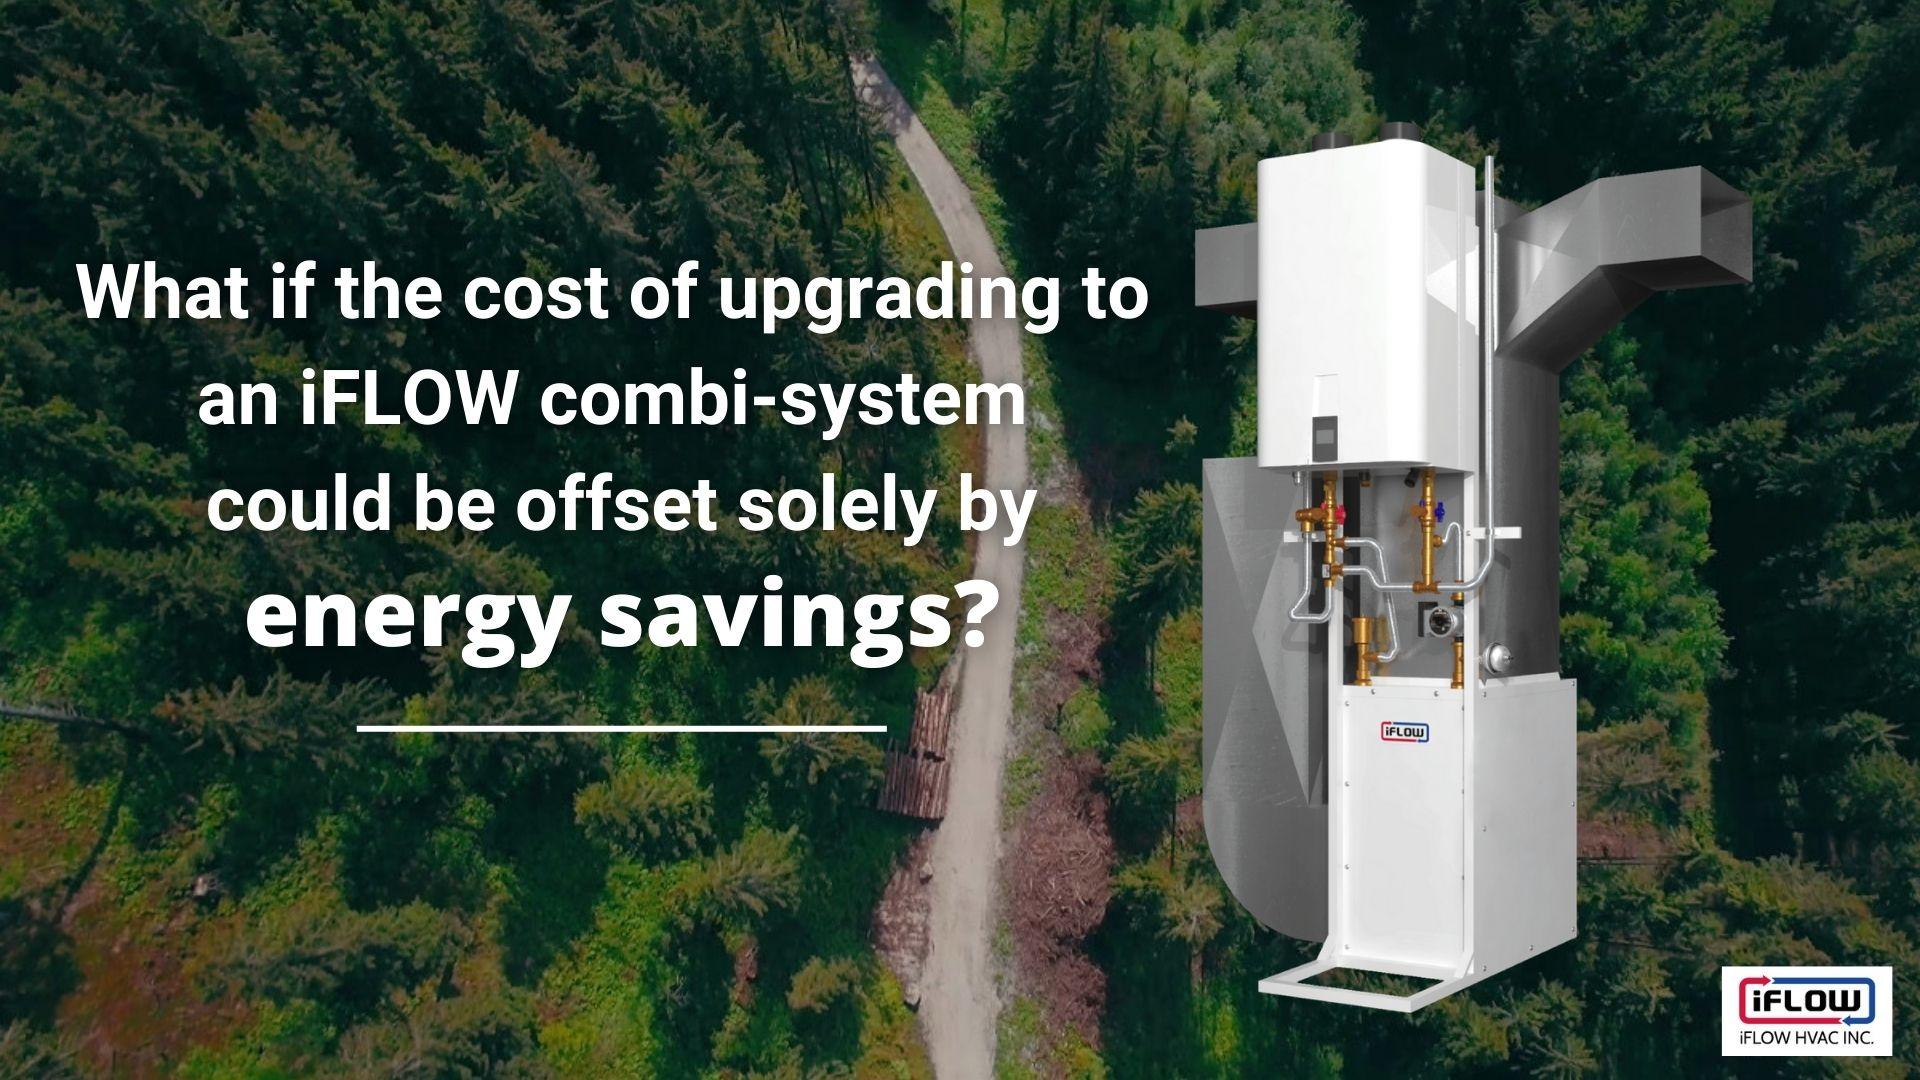 What if the cost of upgrading to an iFLOW combi-system could be offset solely by energy savings